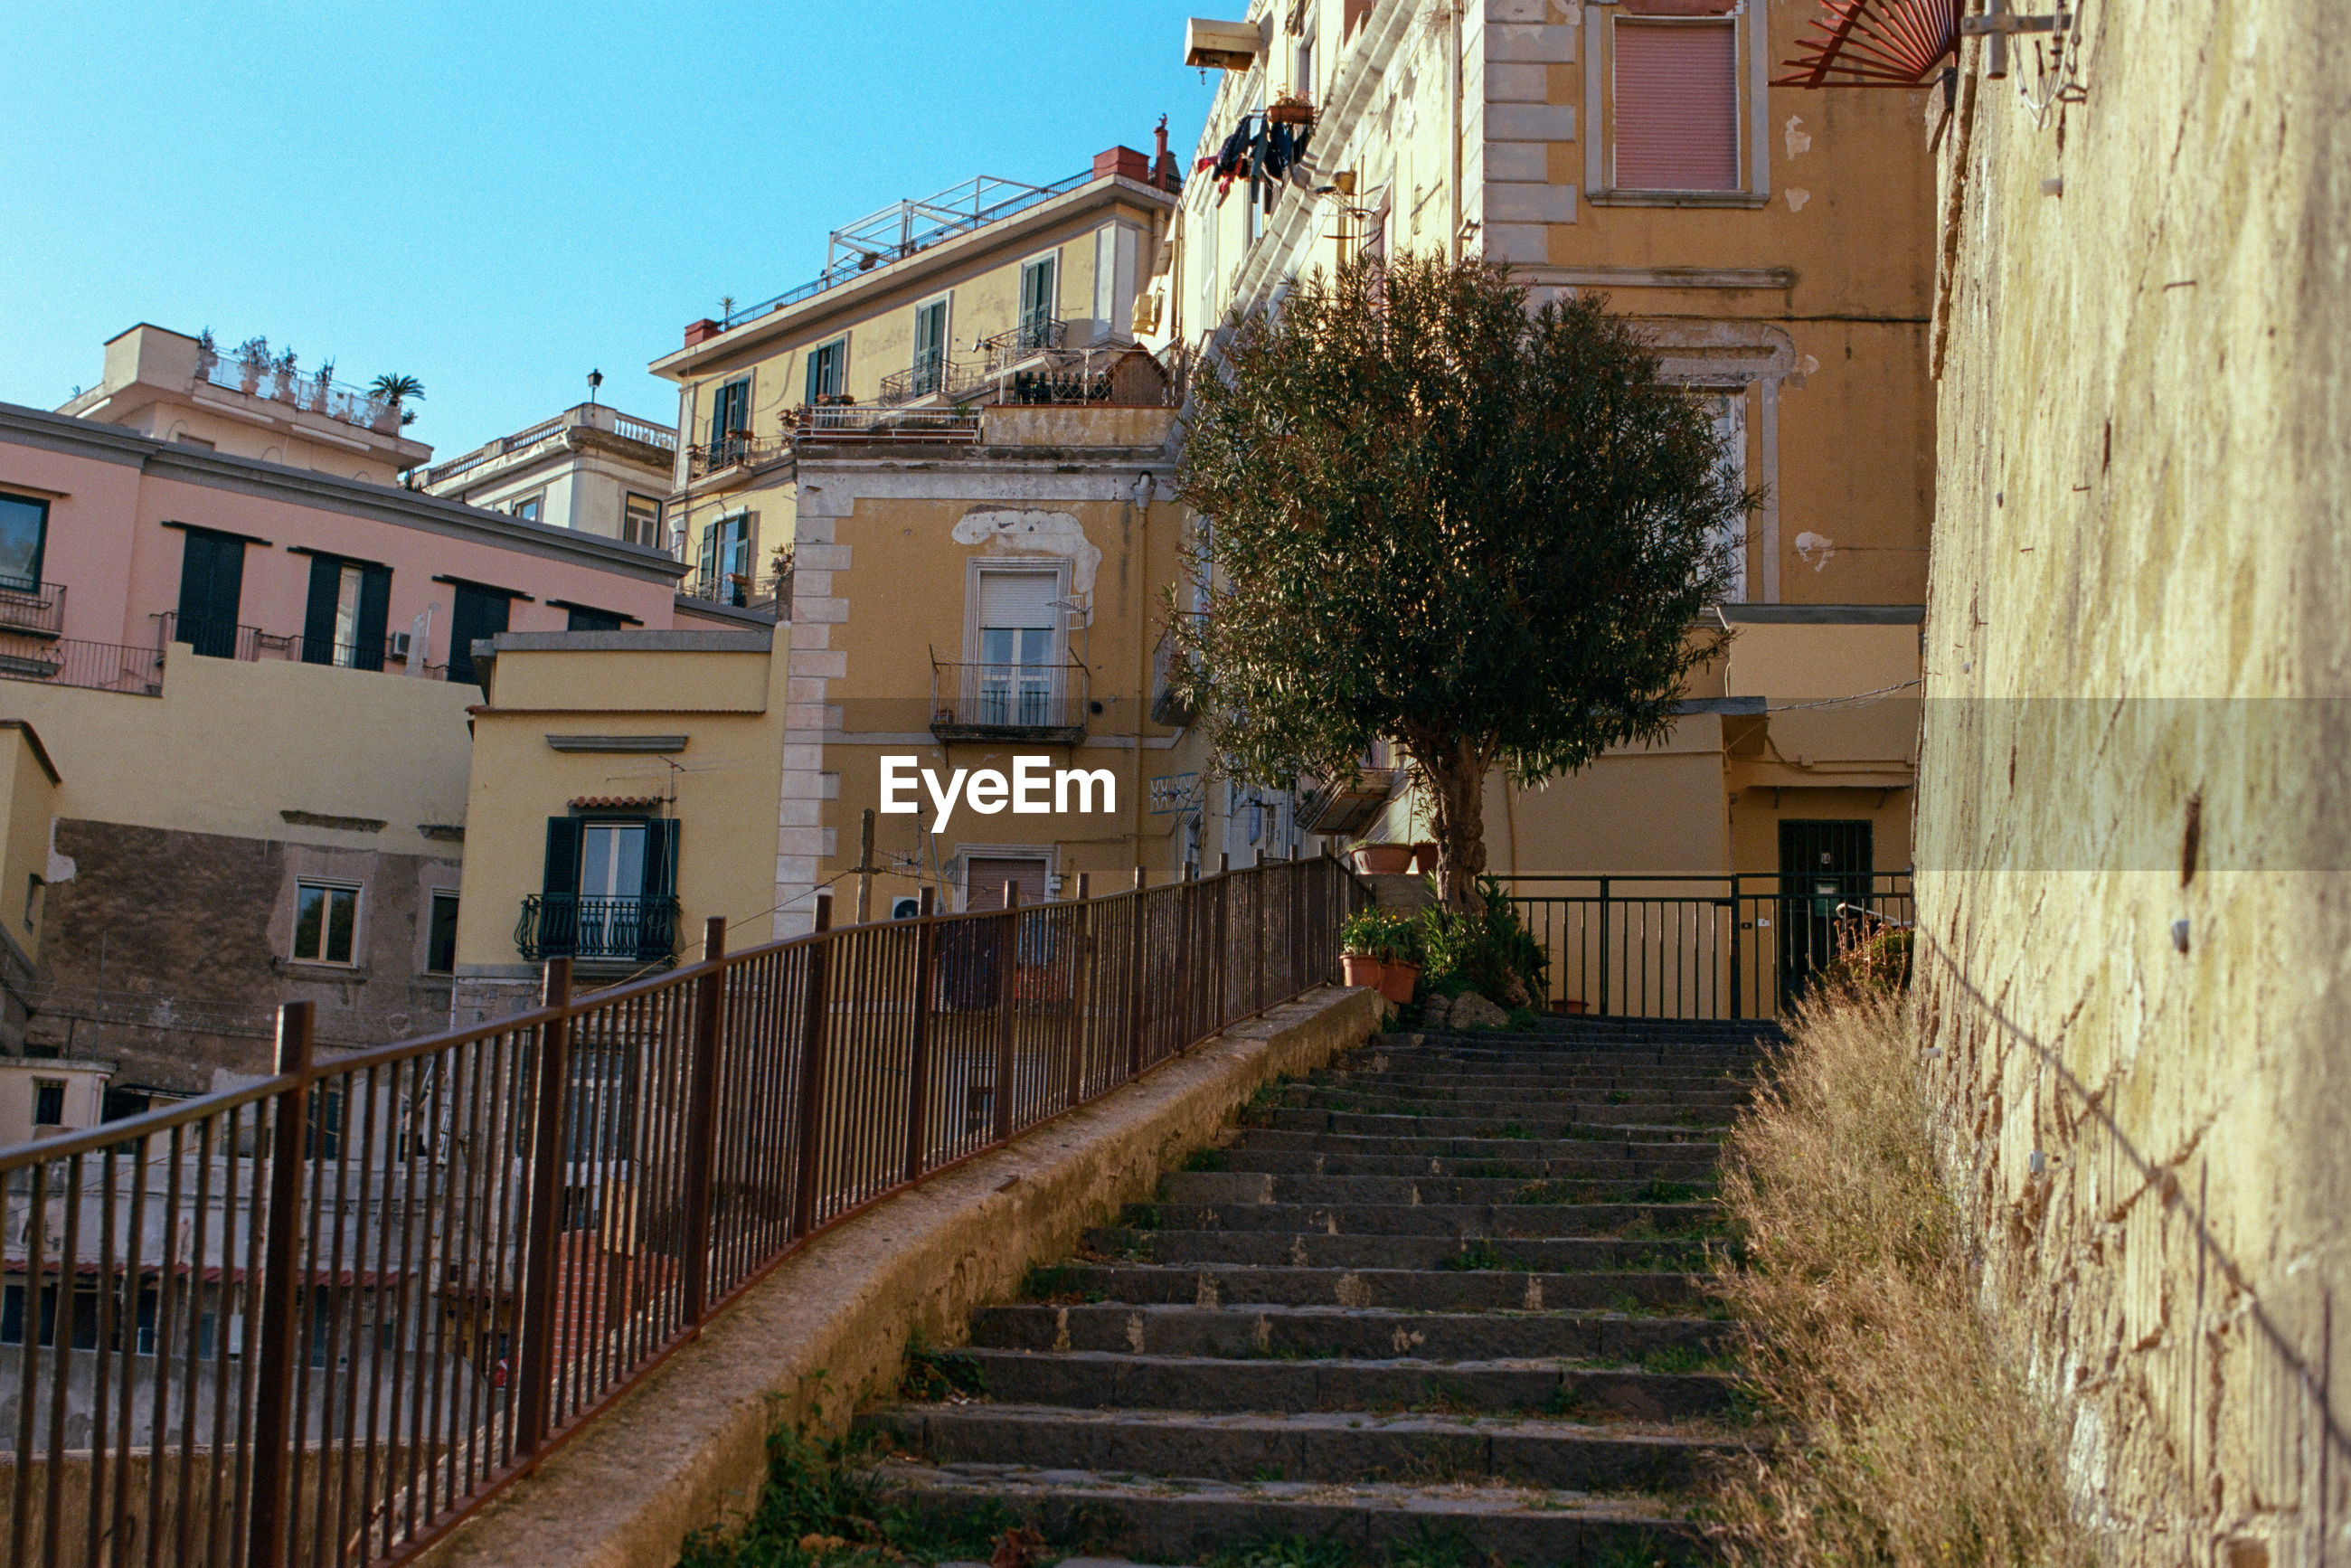 LOW ANGLE VIEW OF STAIRCASE AGAINST BUILDINGS